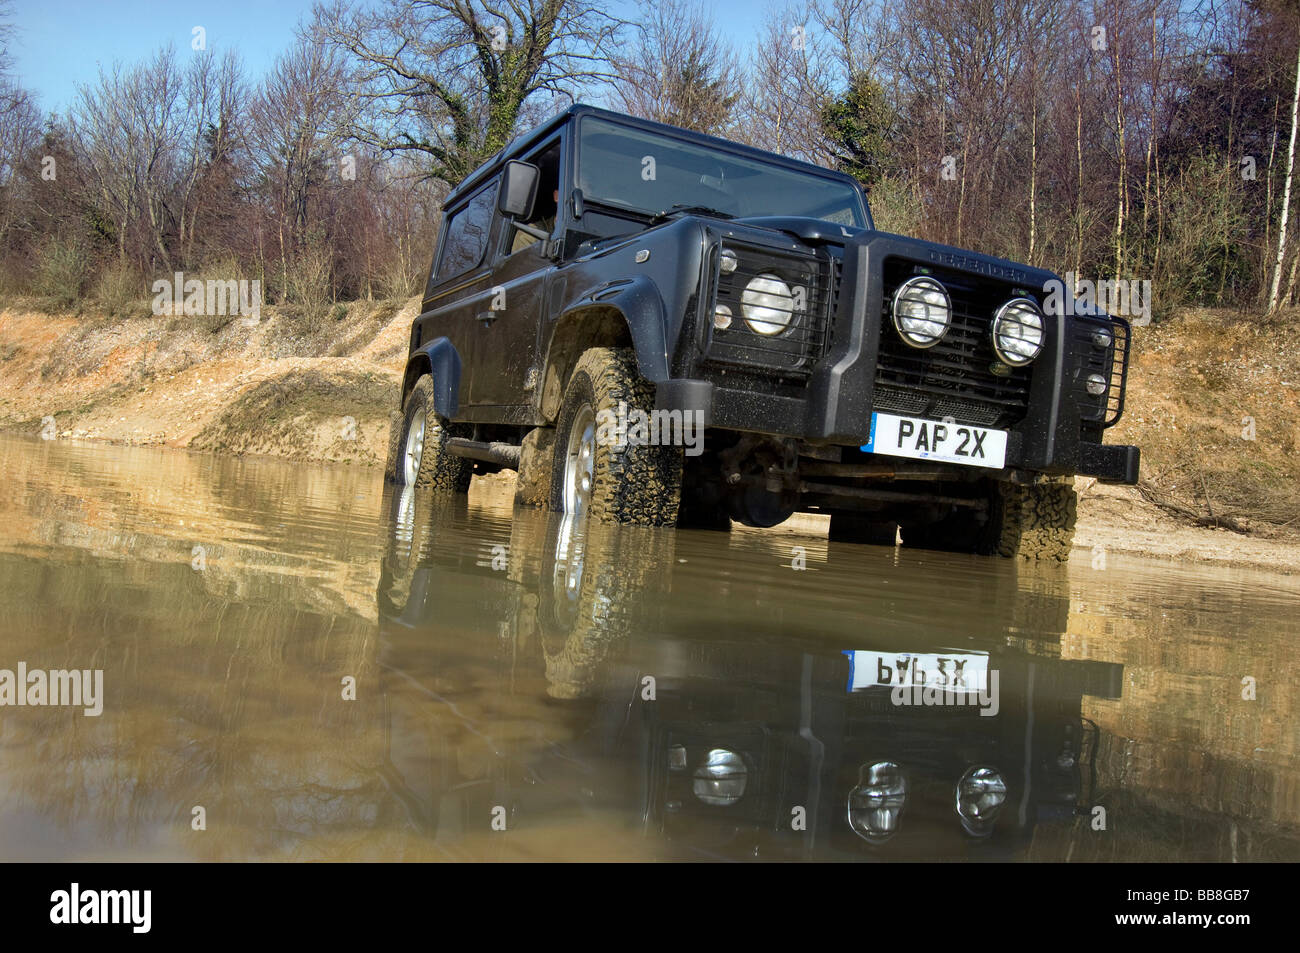 A Landrover Defender driving through a flood on an off road exercise - Stock Image